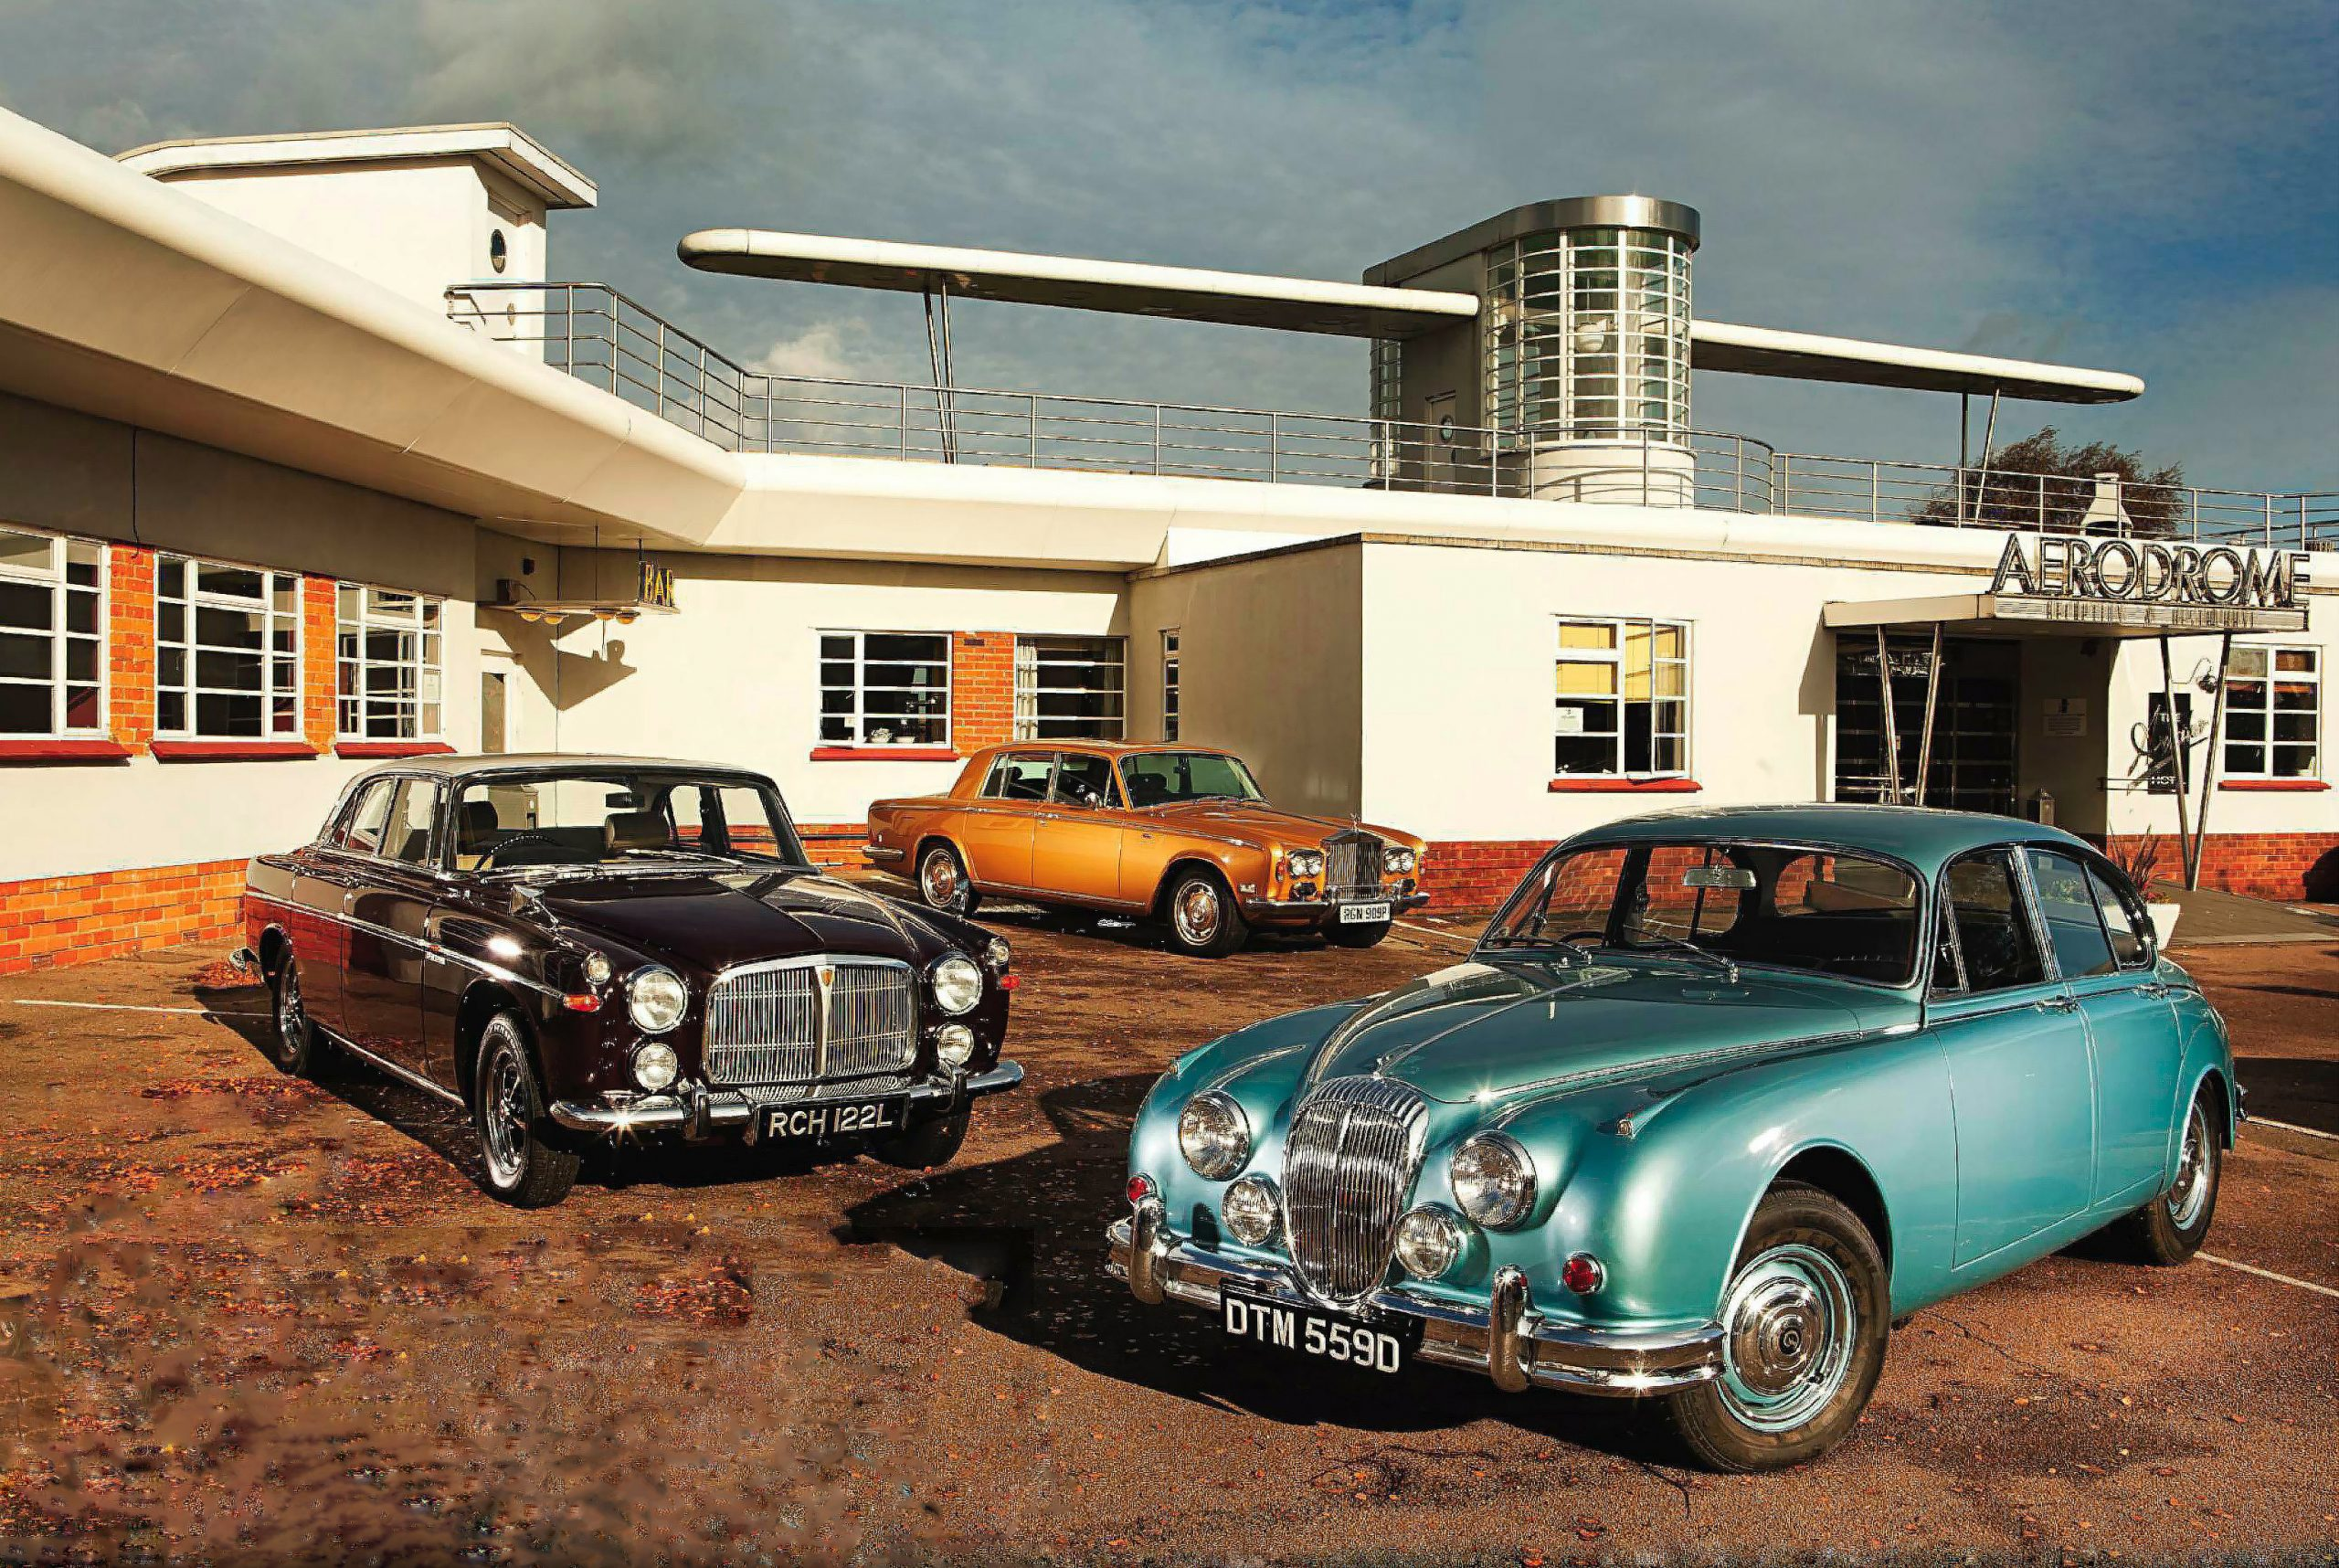 Rolls-Royce Silver Shadow vs Rover 3.5 Litre Coupe and Daimler V8-250 Rolls-Royce Silver Shadow vs Rover 3.5 Litre Coupe and Daimler V8-250